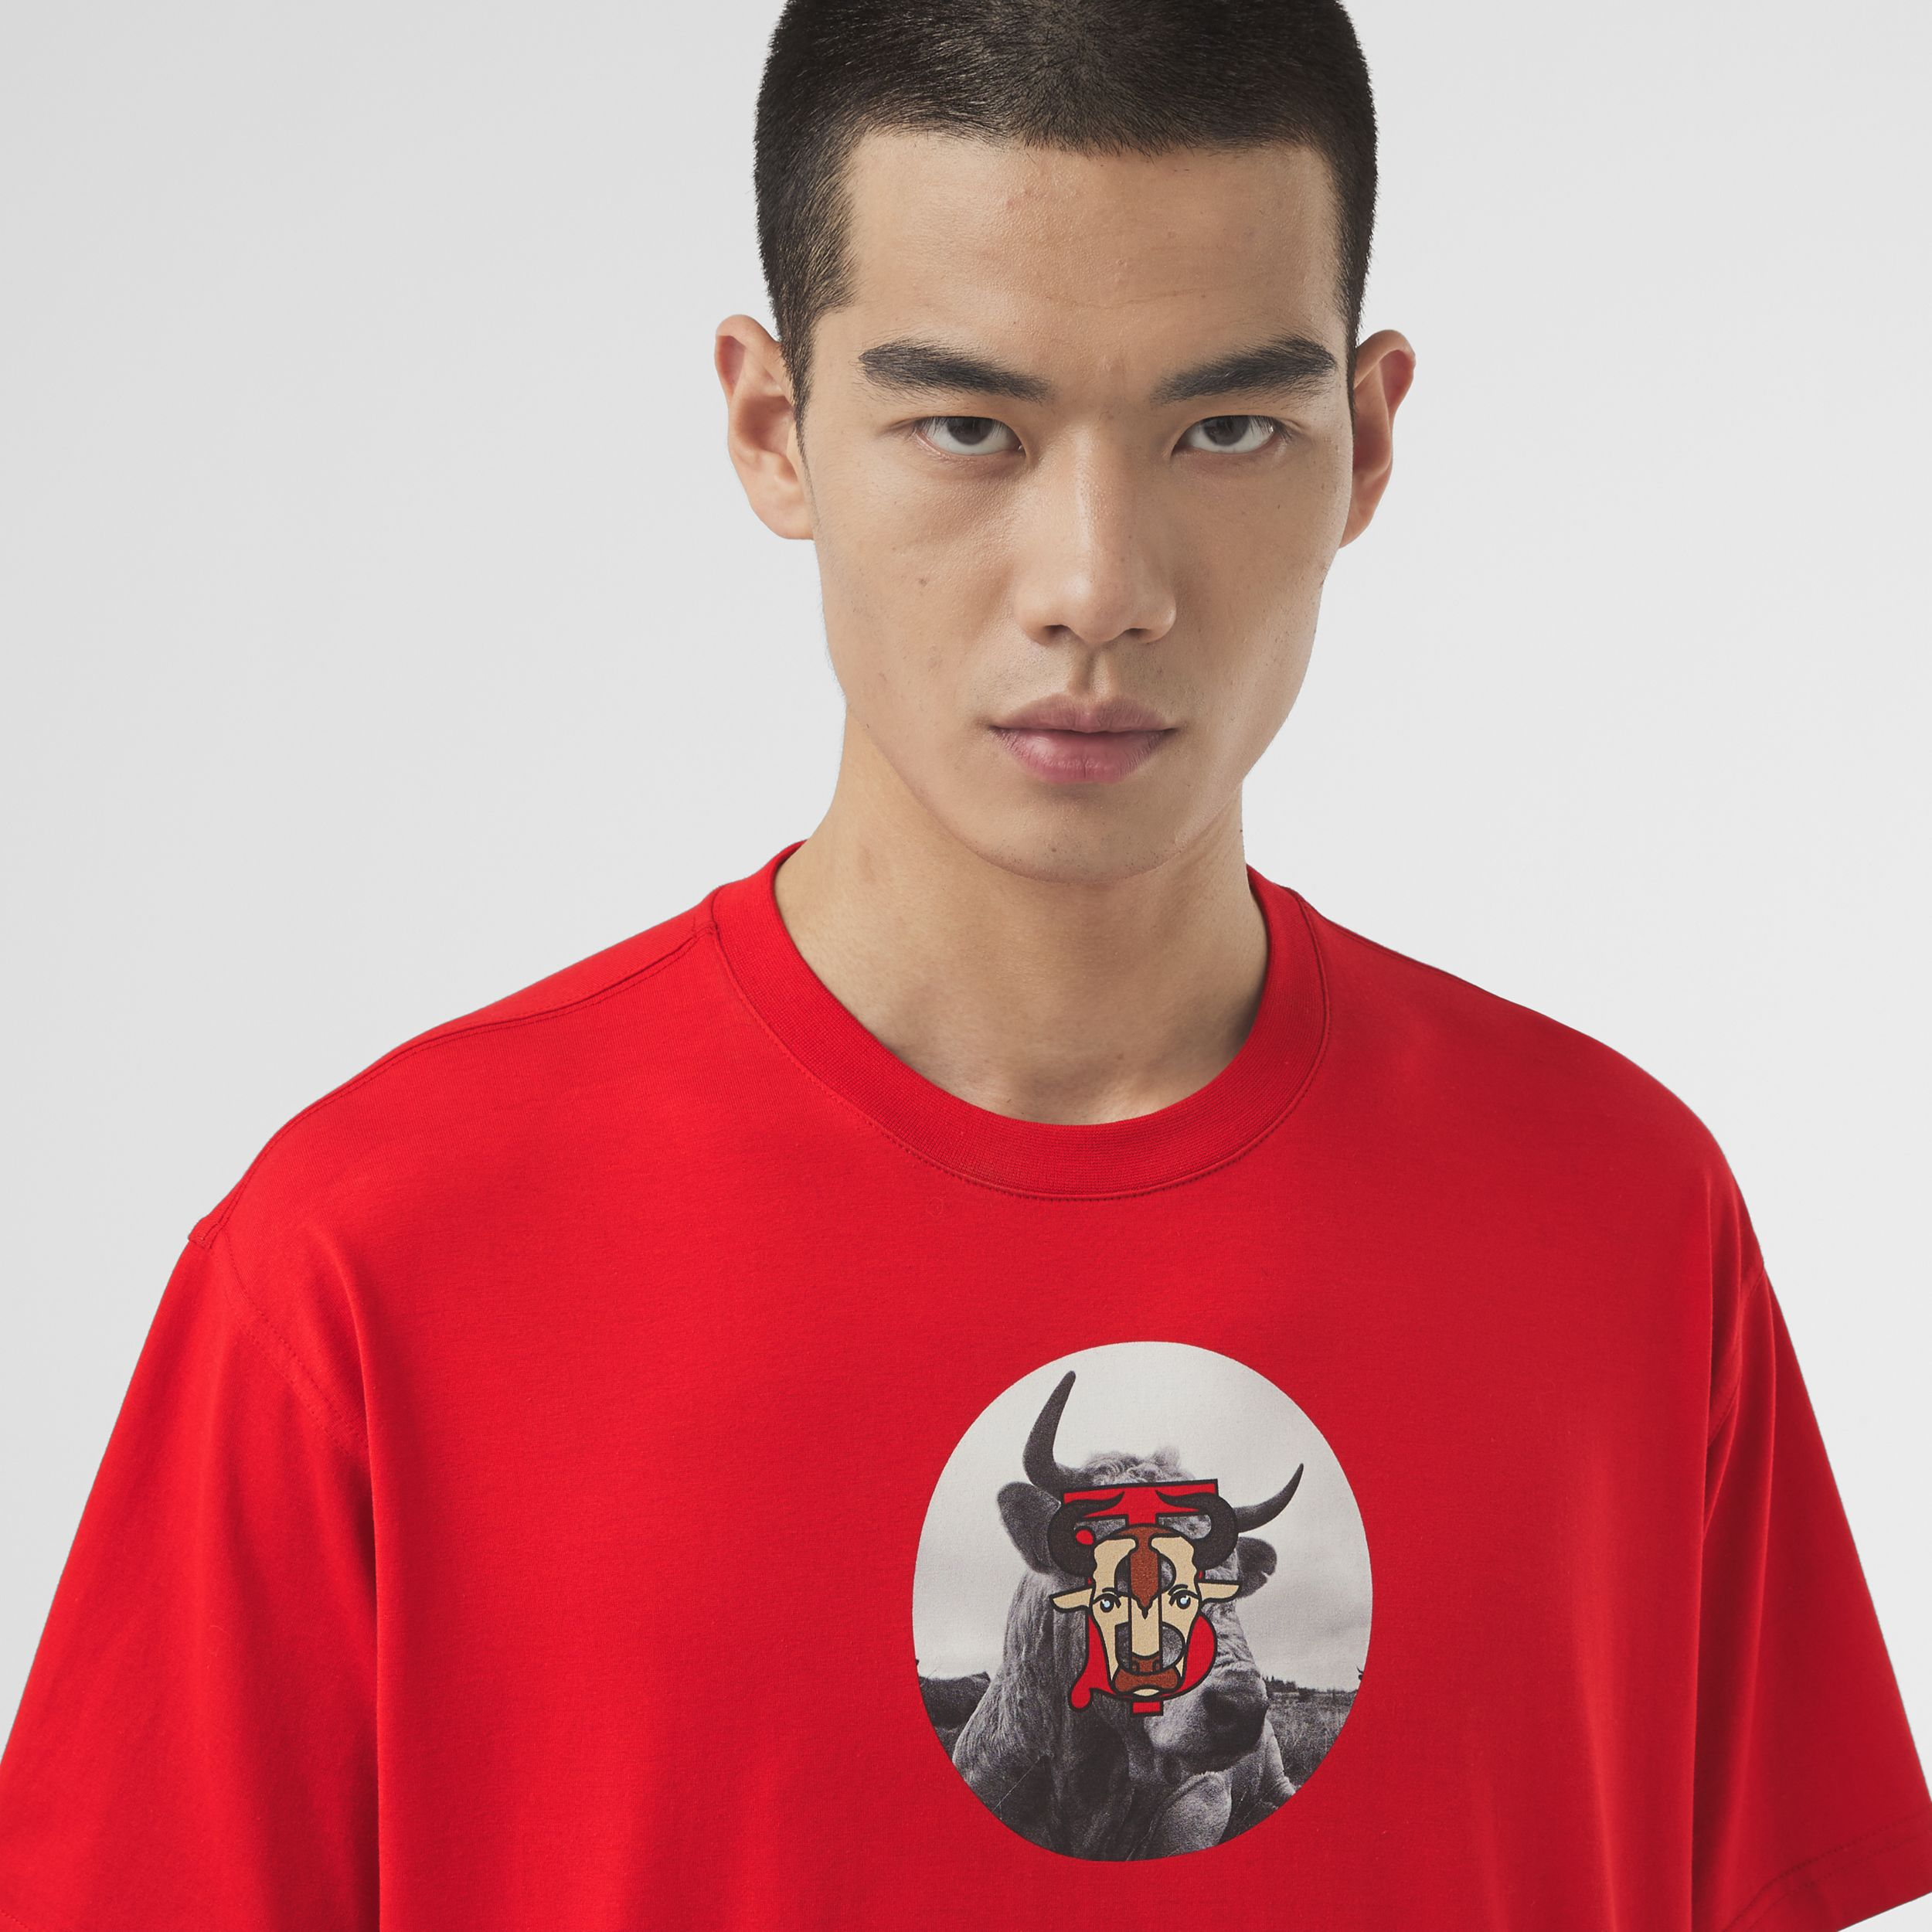 Montage Print Cotton T-shirt – Unisex in Bright Red | Burberry Australia - 2